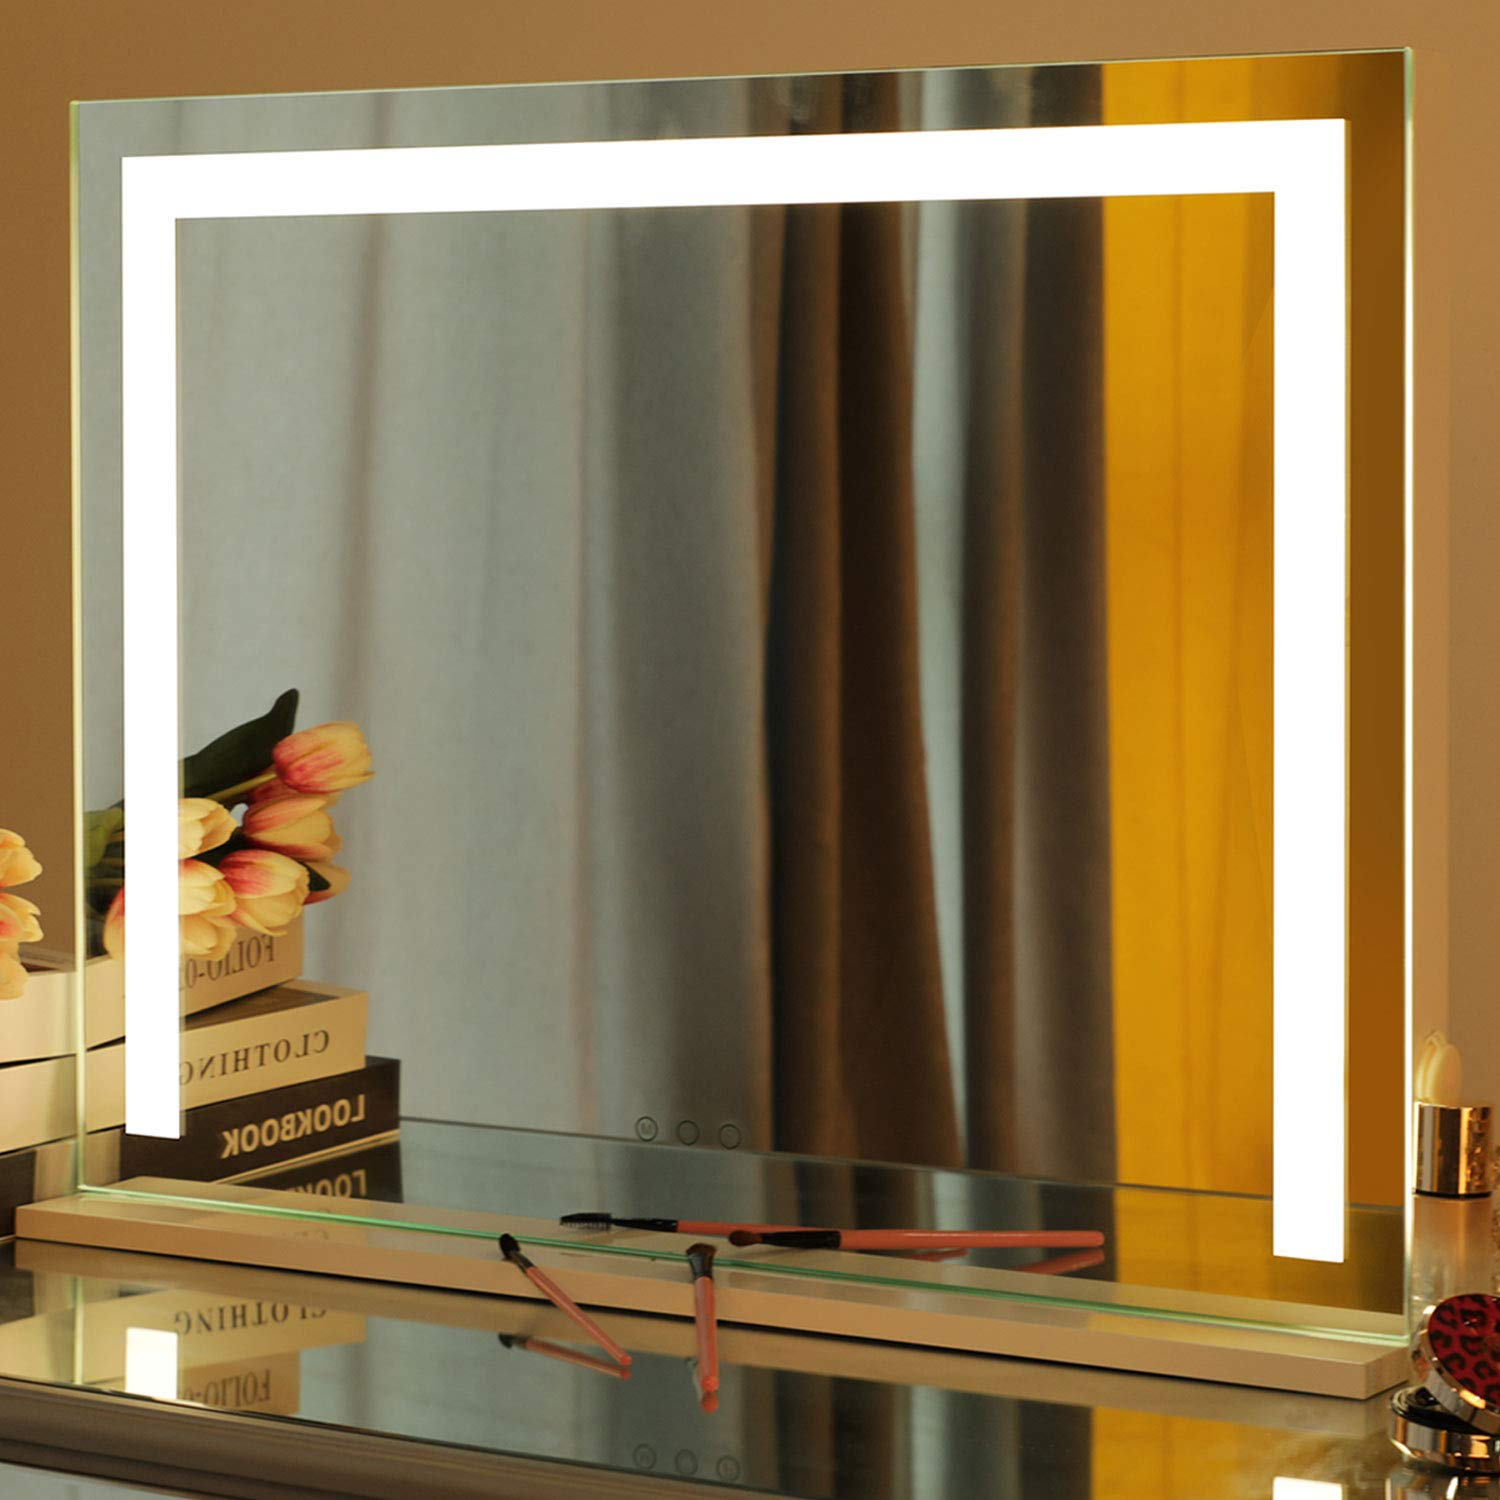 Large Vanity Mirror with 3 Color Modes - Hollywood Lighted Makeup Mirror with Dimmable Lights & USB Port, Tabletop/Wall Cosmetic Touch Control Beauty Cosmetic Mirror, 27.5